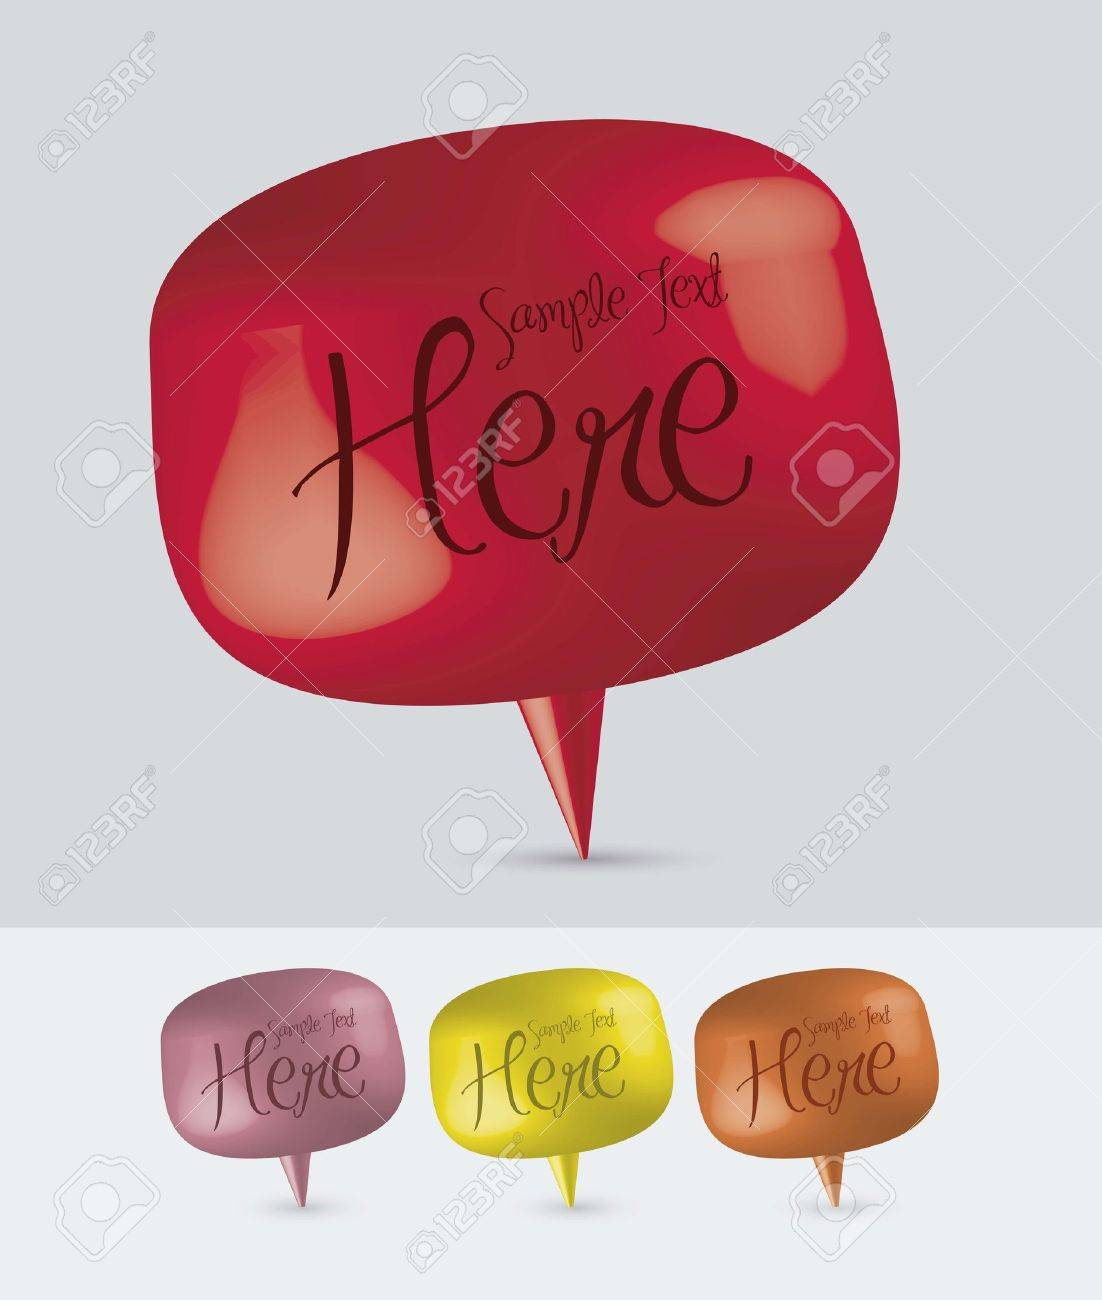 illustration of colorful text balloons, 3D, vector illustration Stock Vector - 15309417